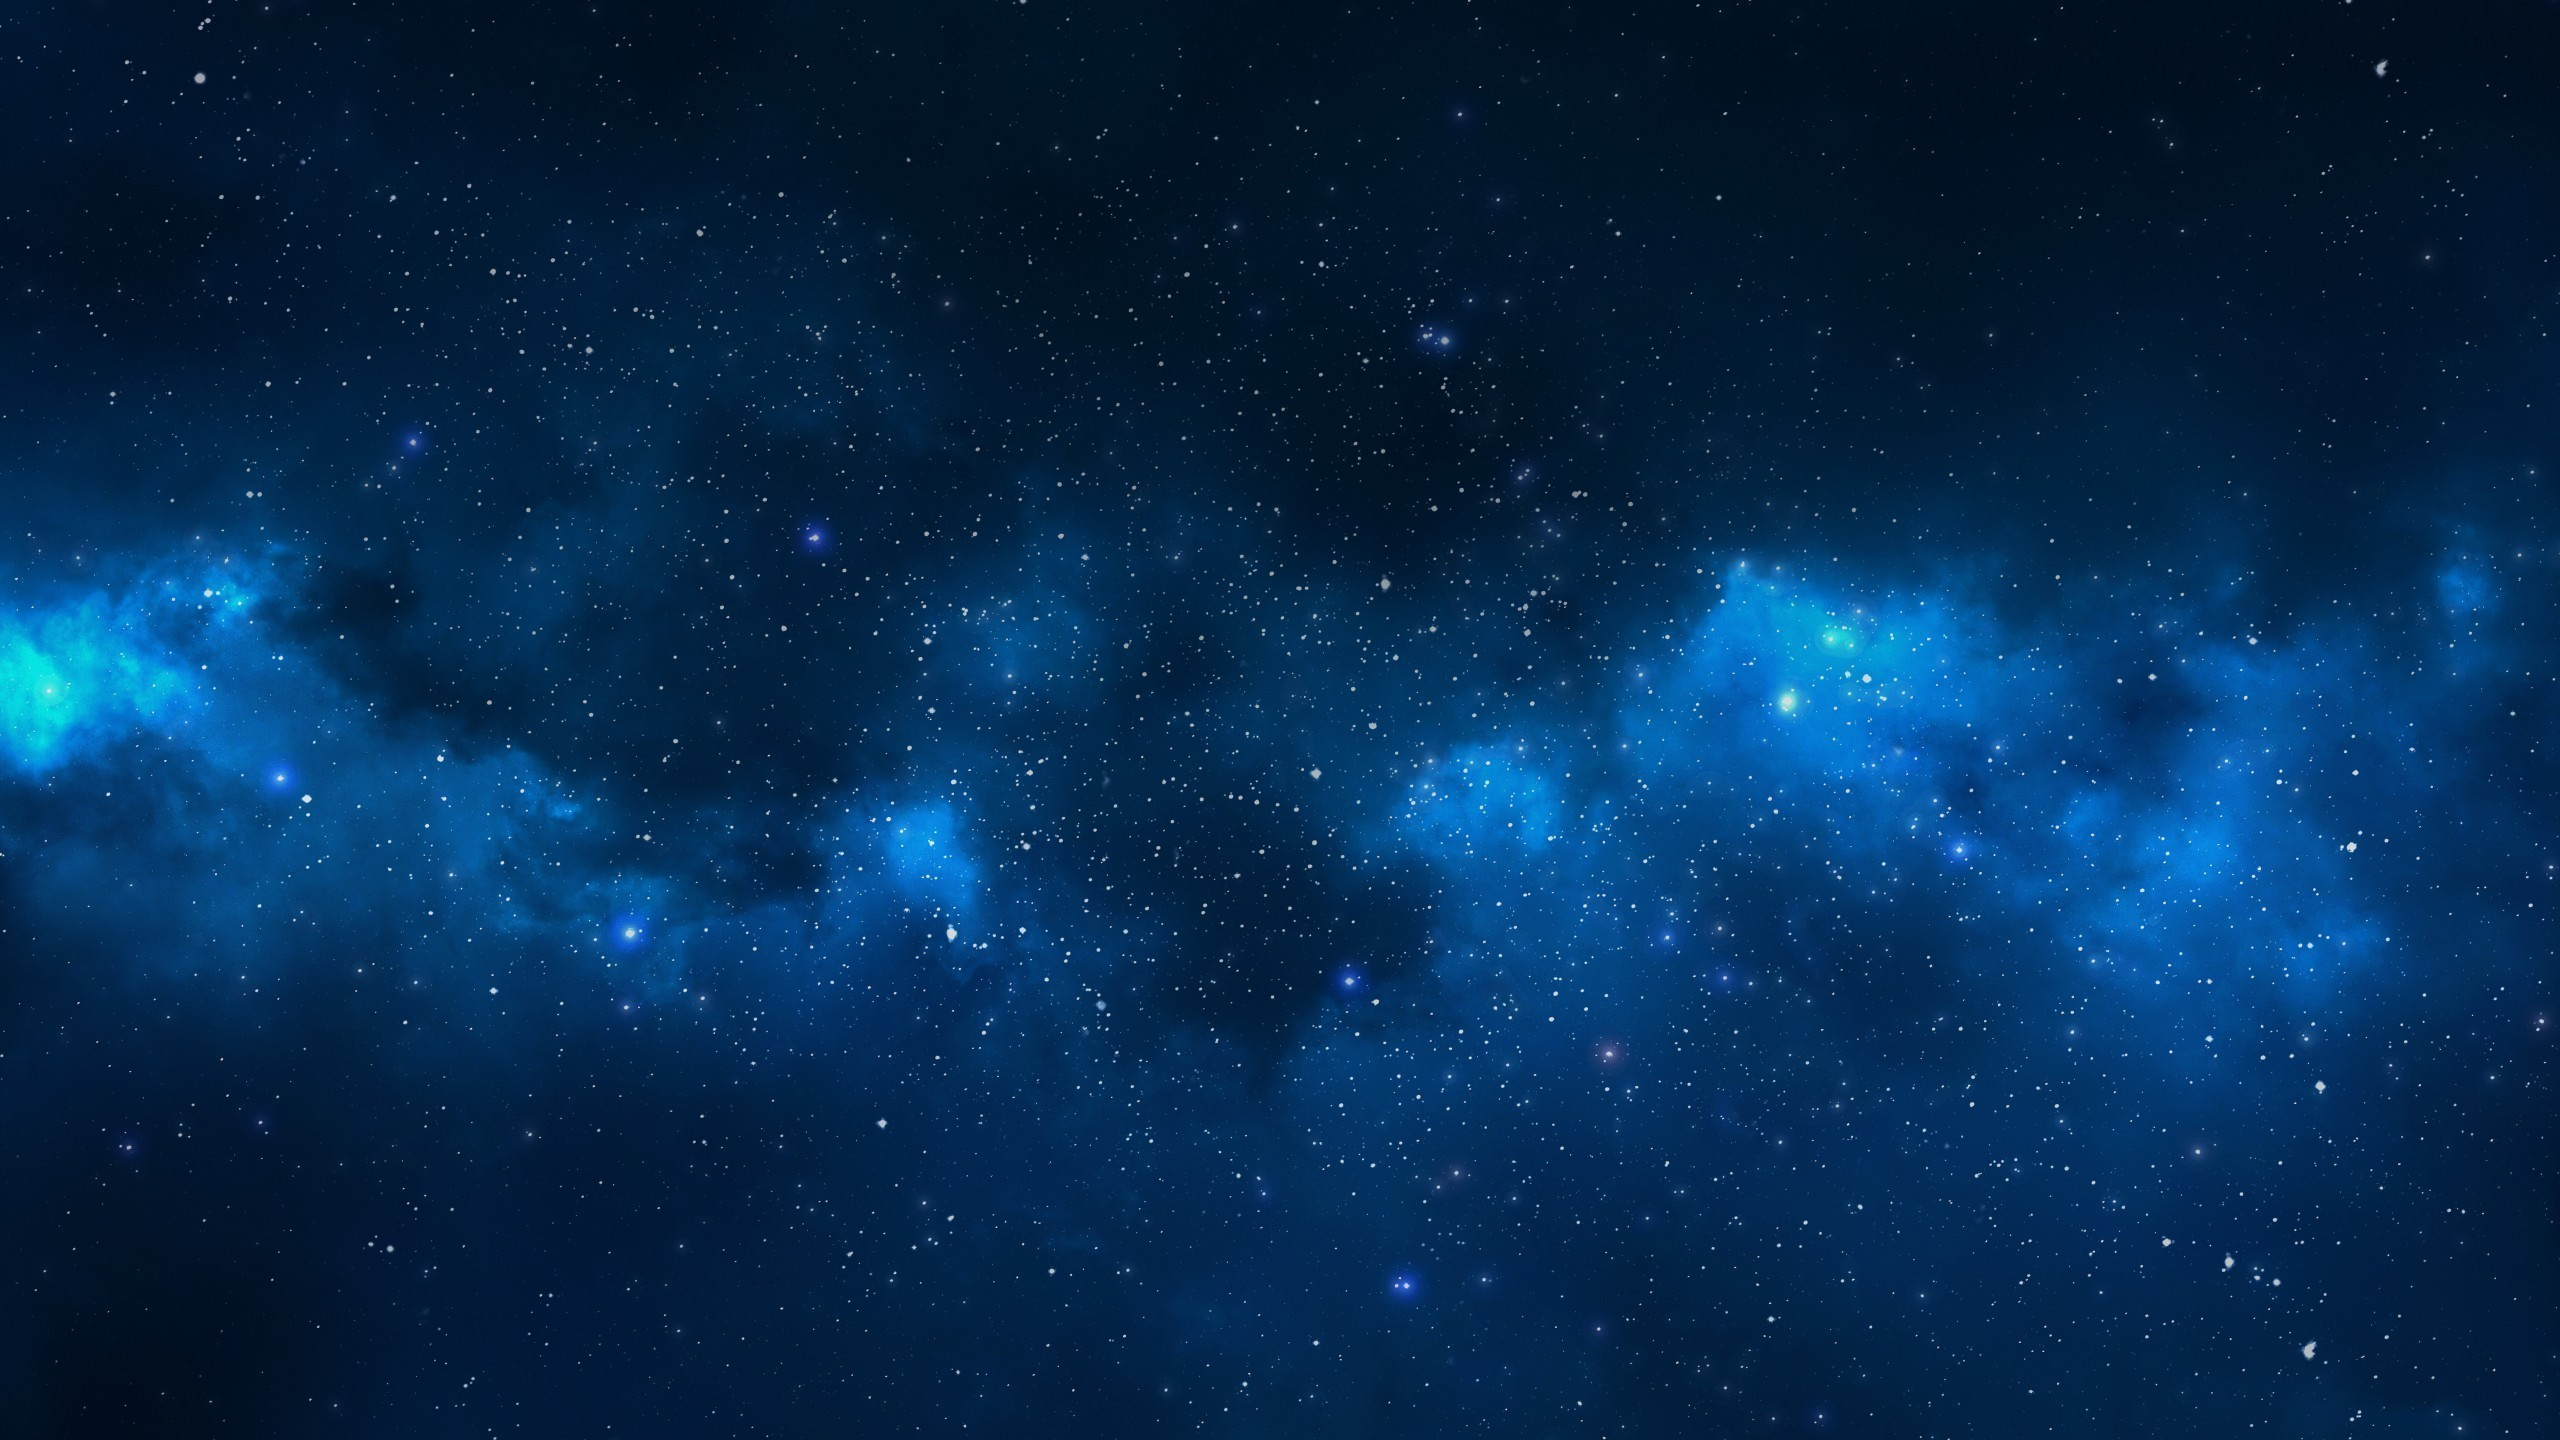 2560x1440 Blue Space simple background